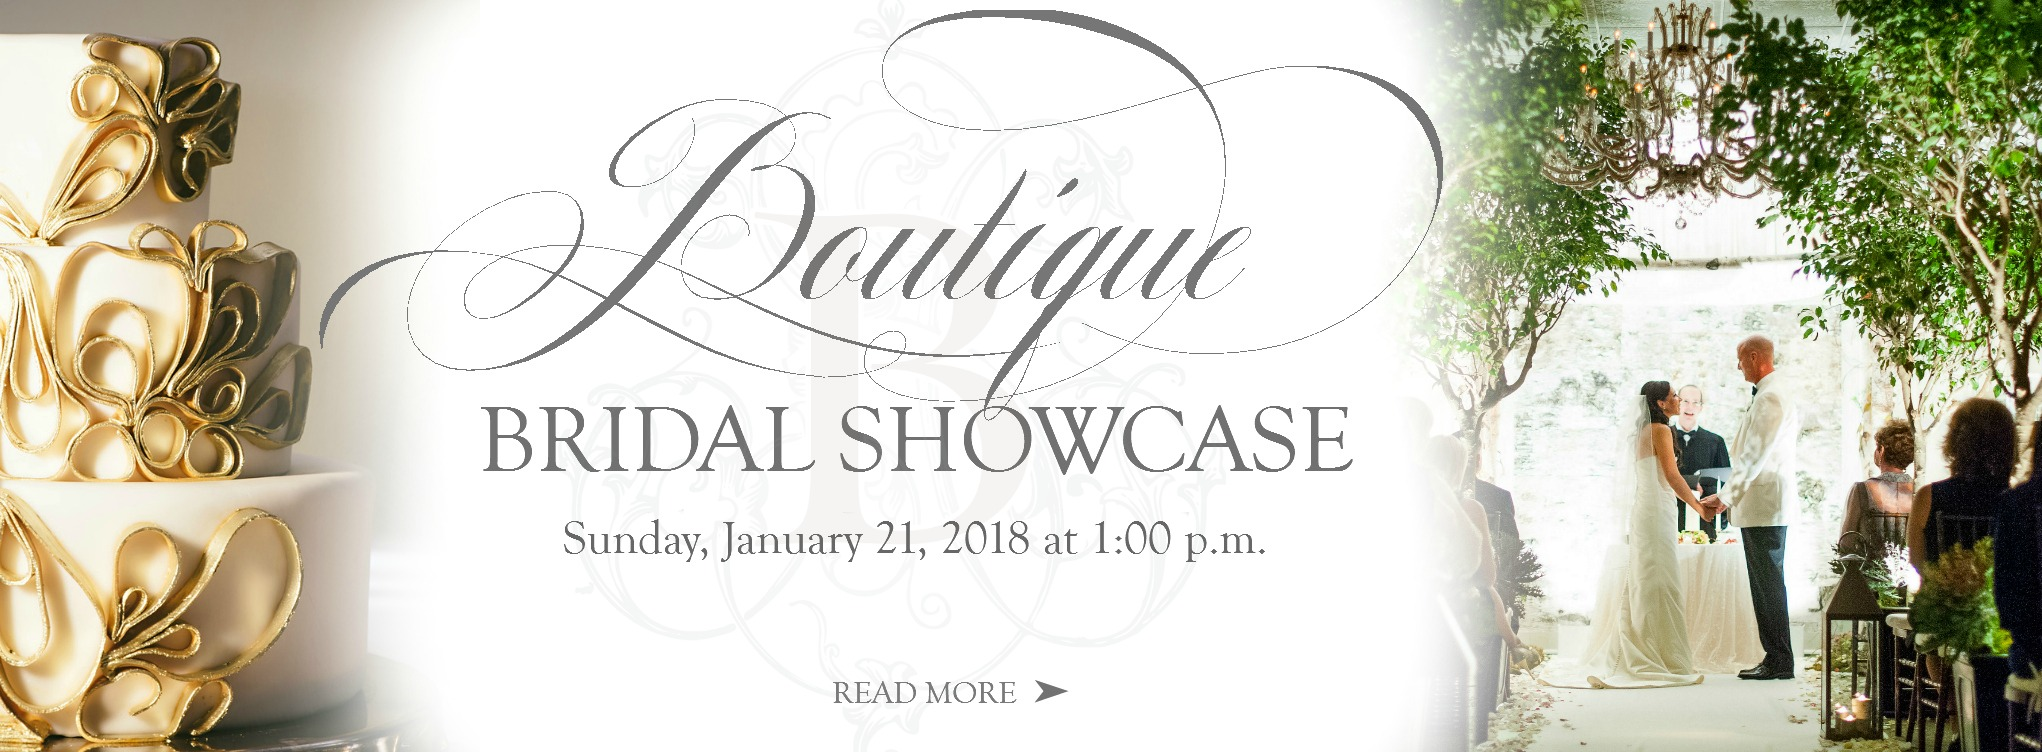 Boutique Bridal Showcase